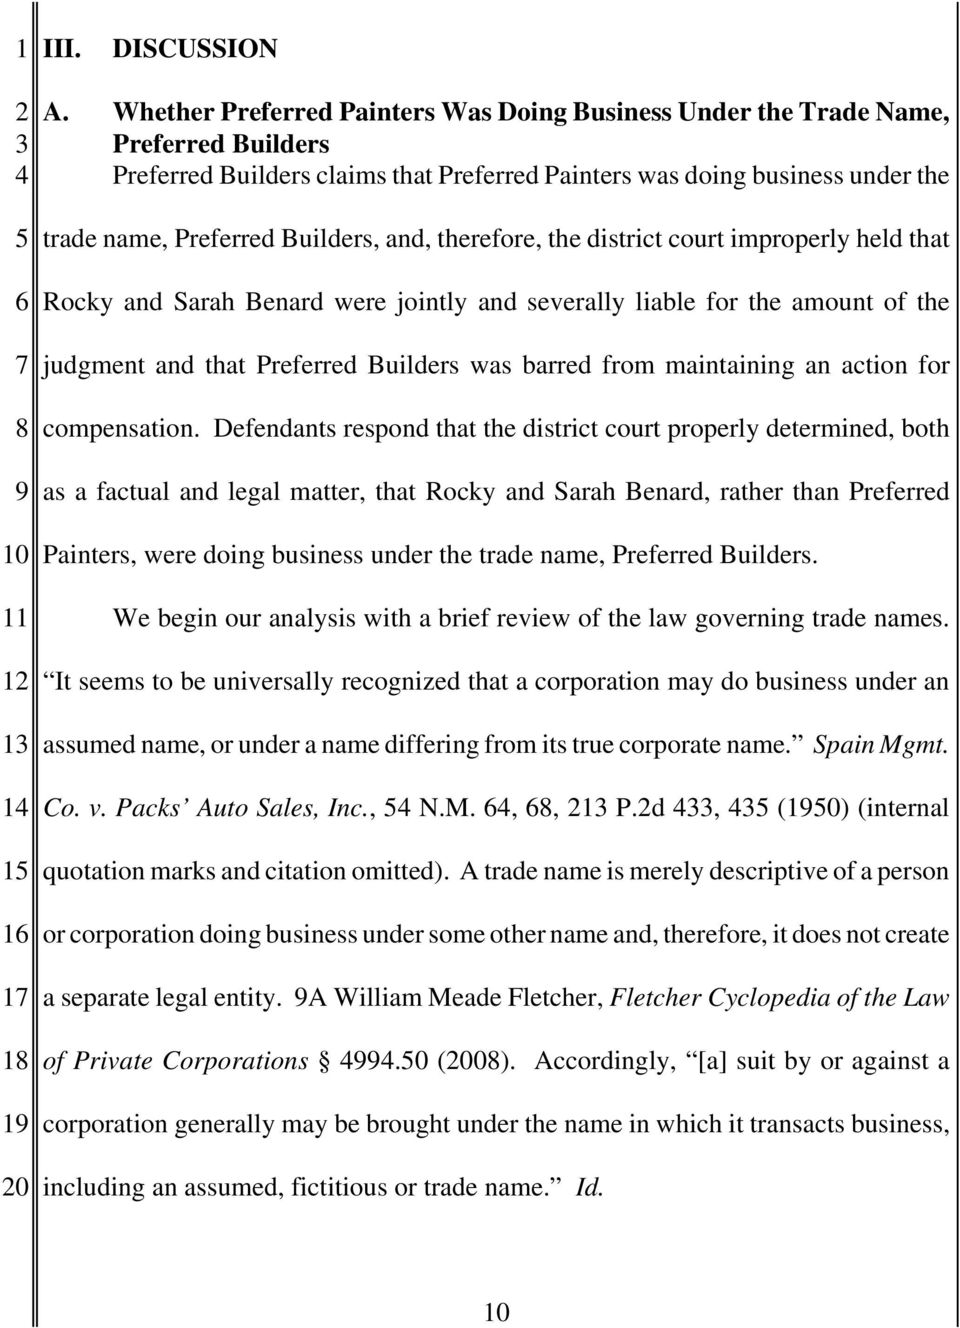 and, therefore, the district court improperly held that Rocky and Sarah Benard were jointly and severally liable for the amount of the judgment and that Preferred Builders was barred from maintaining